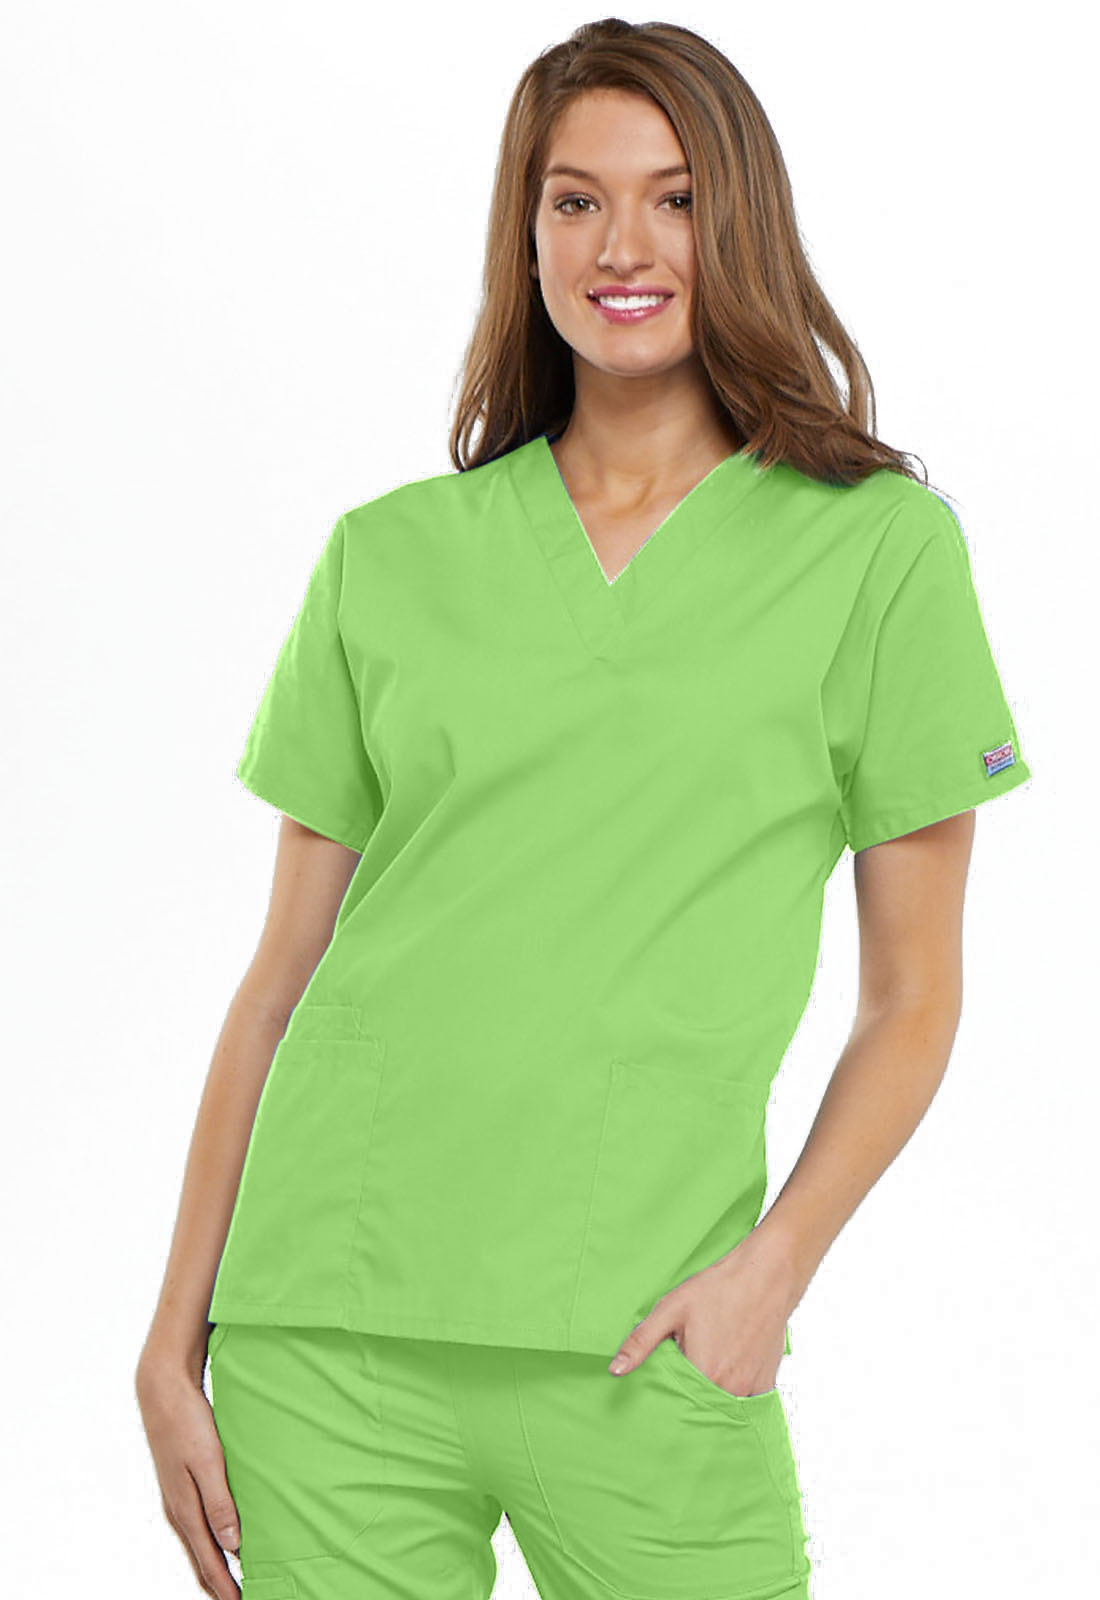 abe5e19fdc0 WW Originals V-Neck Top in Lime Green 4700-LMGW from Cherokee Scrubs ...